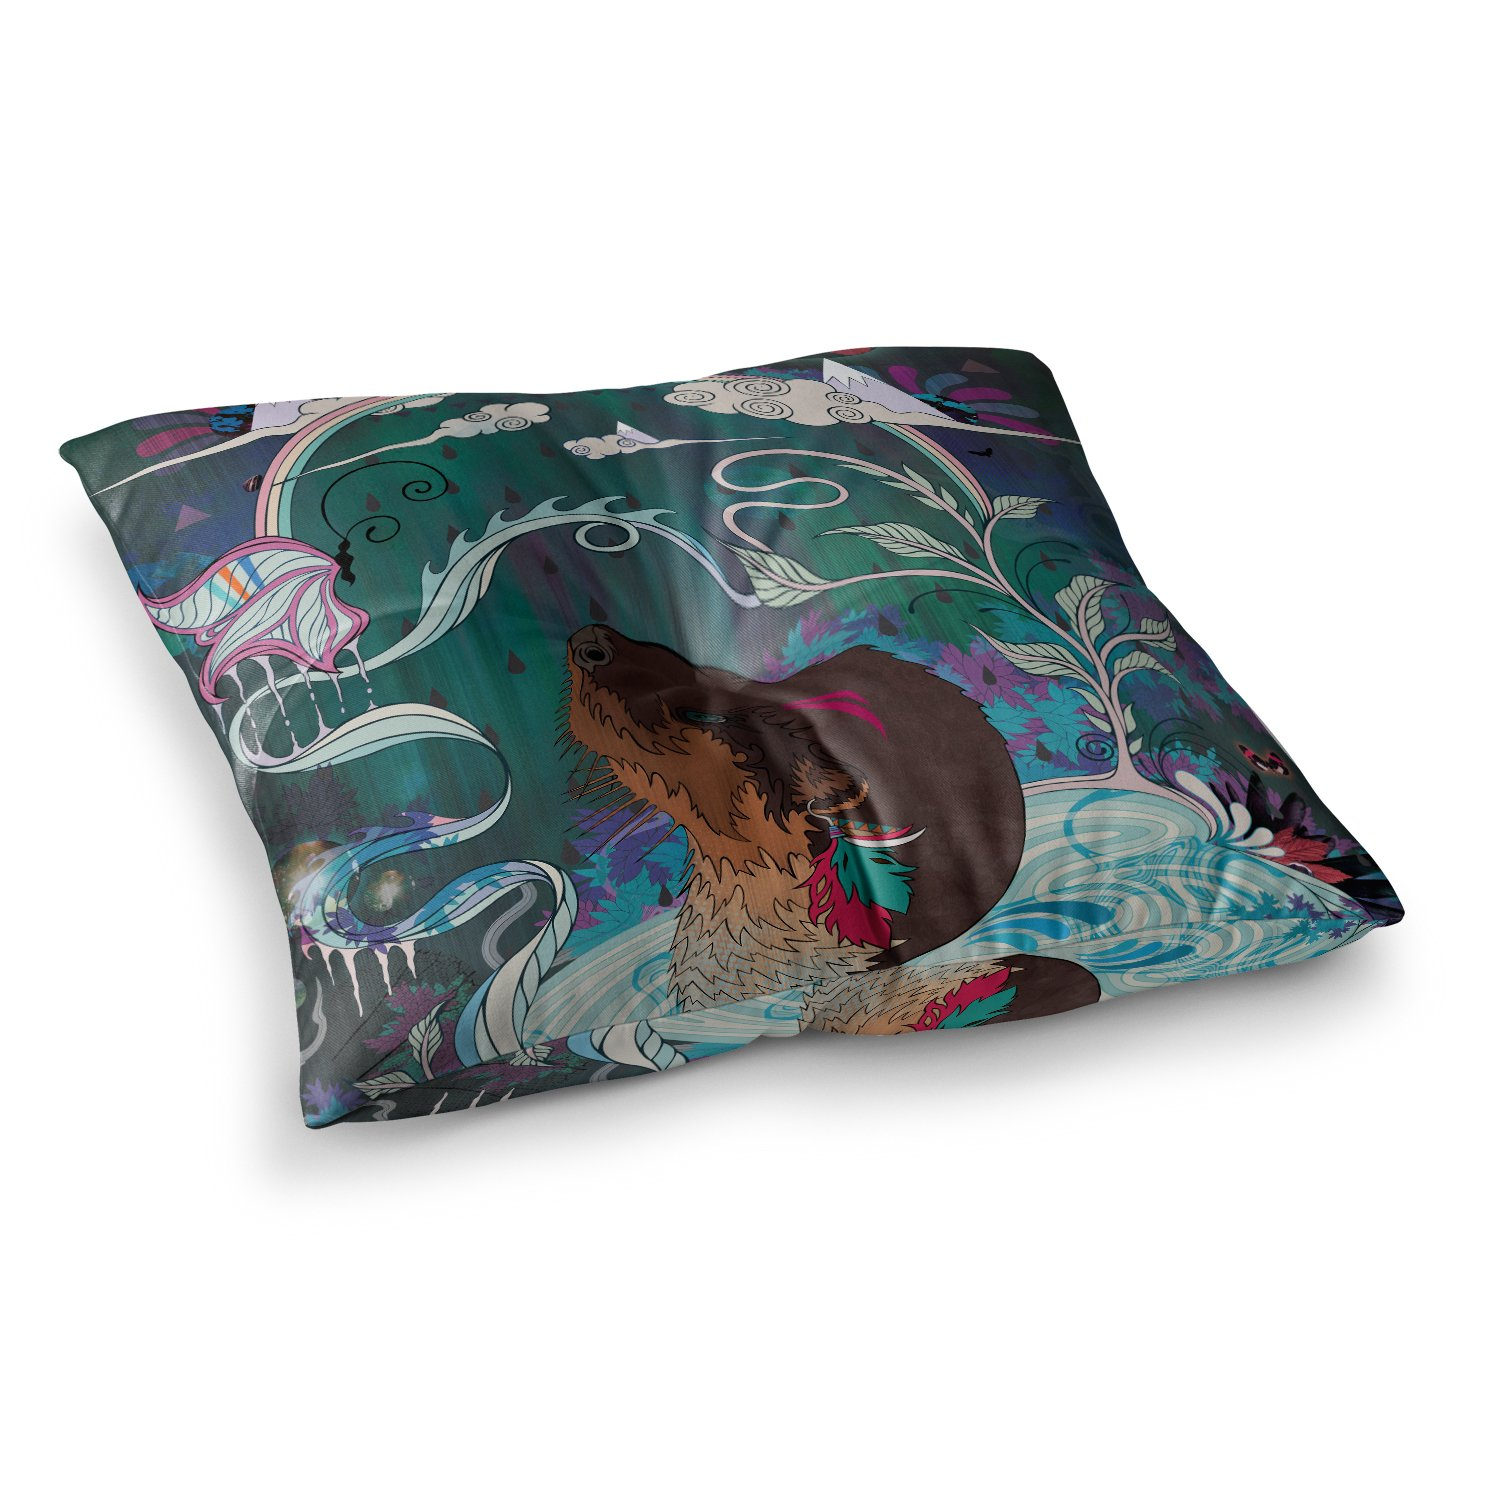 Kess InHouse Mat Miller Delicate Distraction Otter Teal 23 x 23 Square Floor Pillow